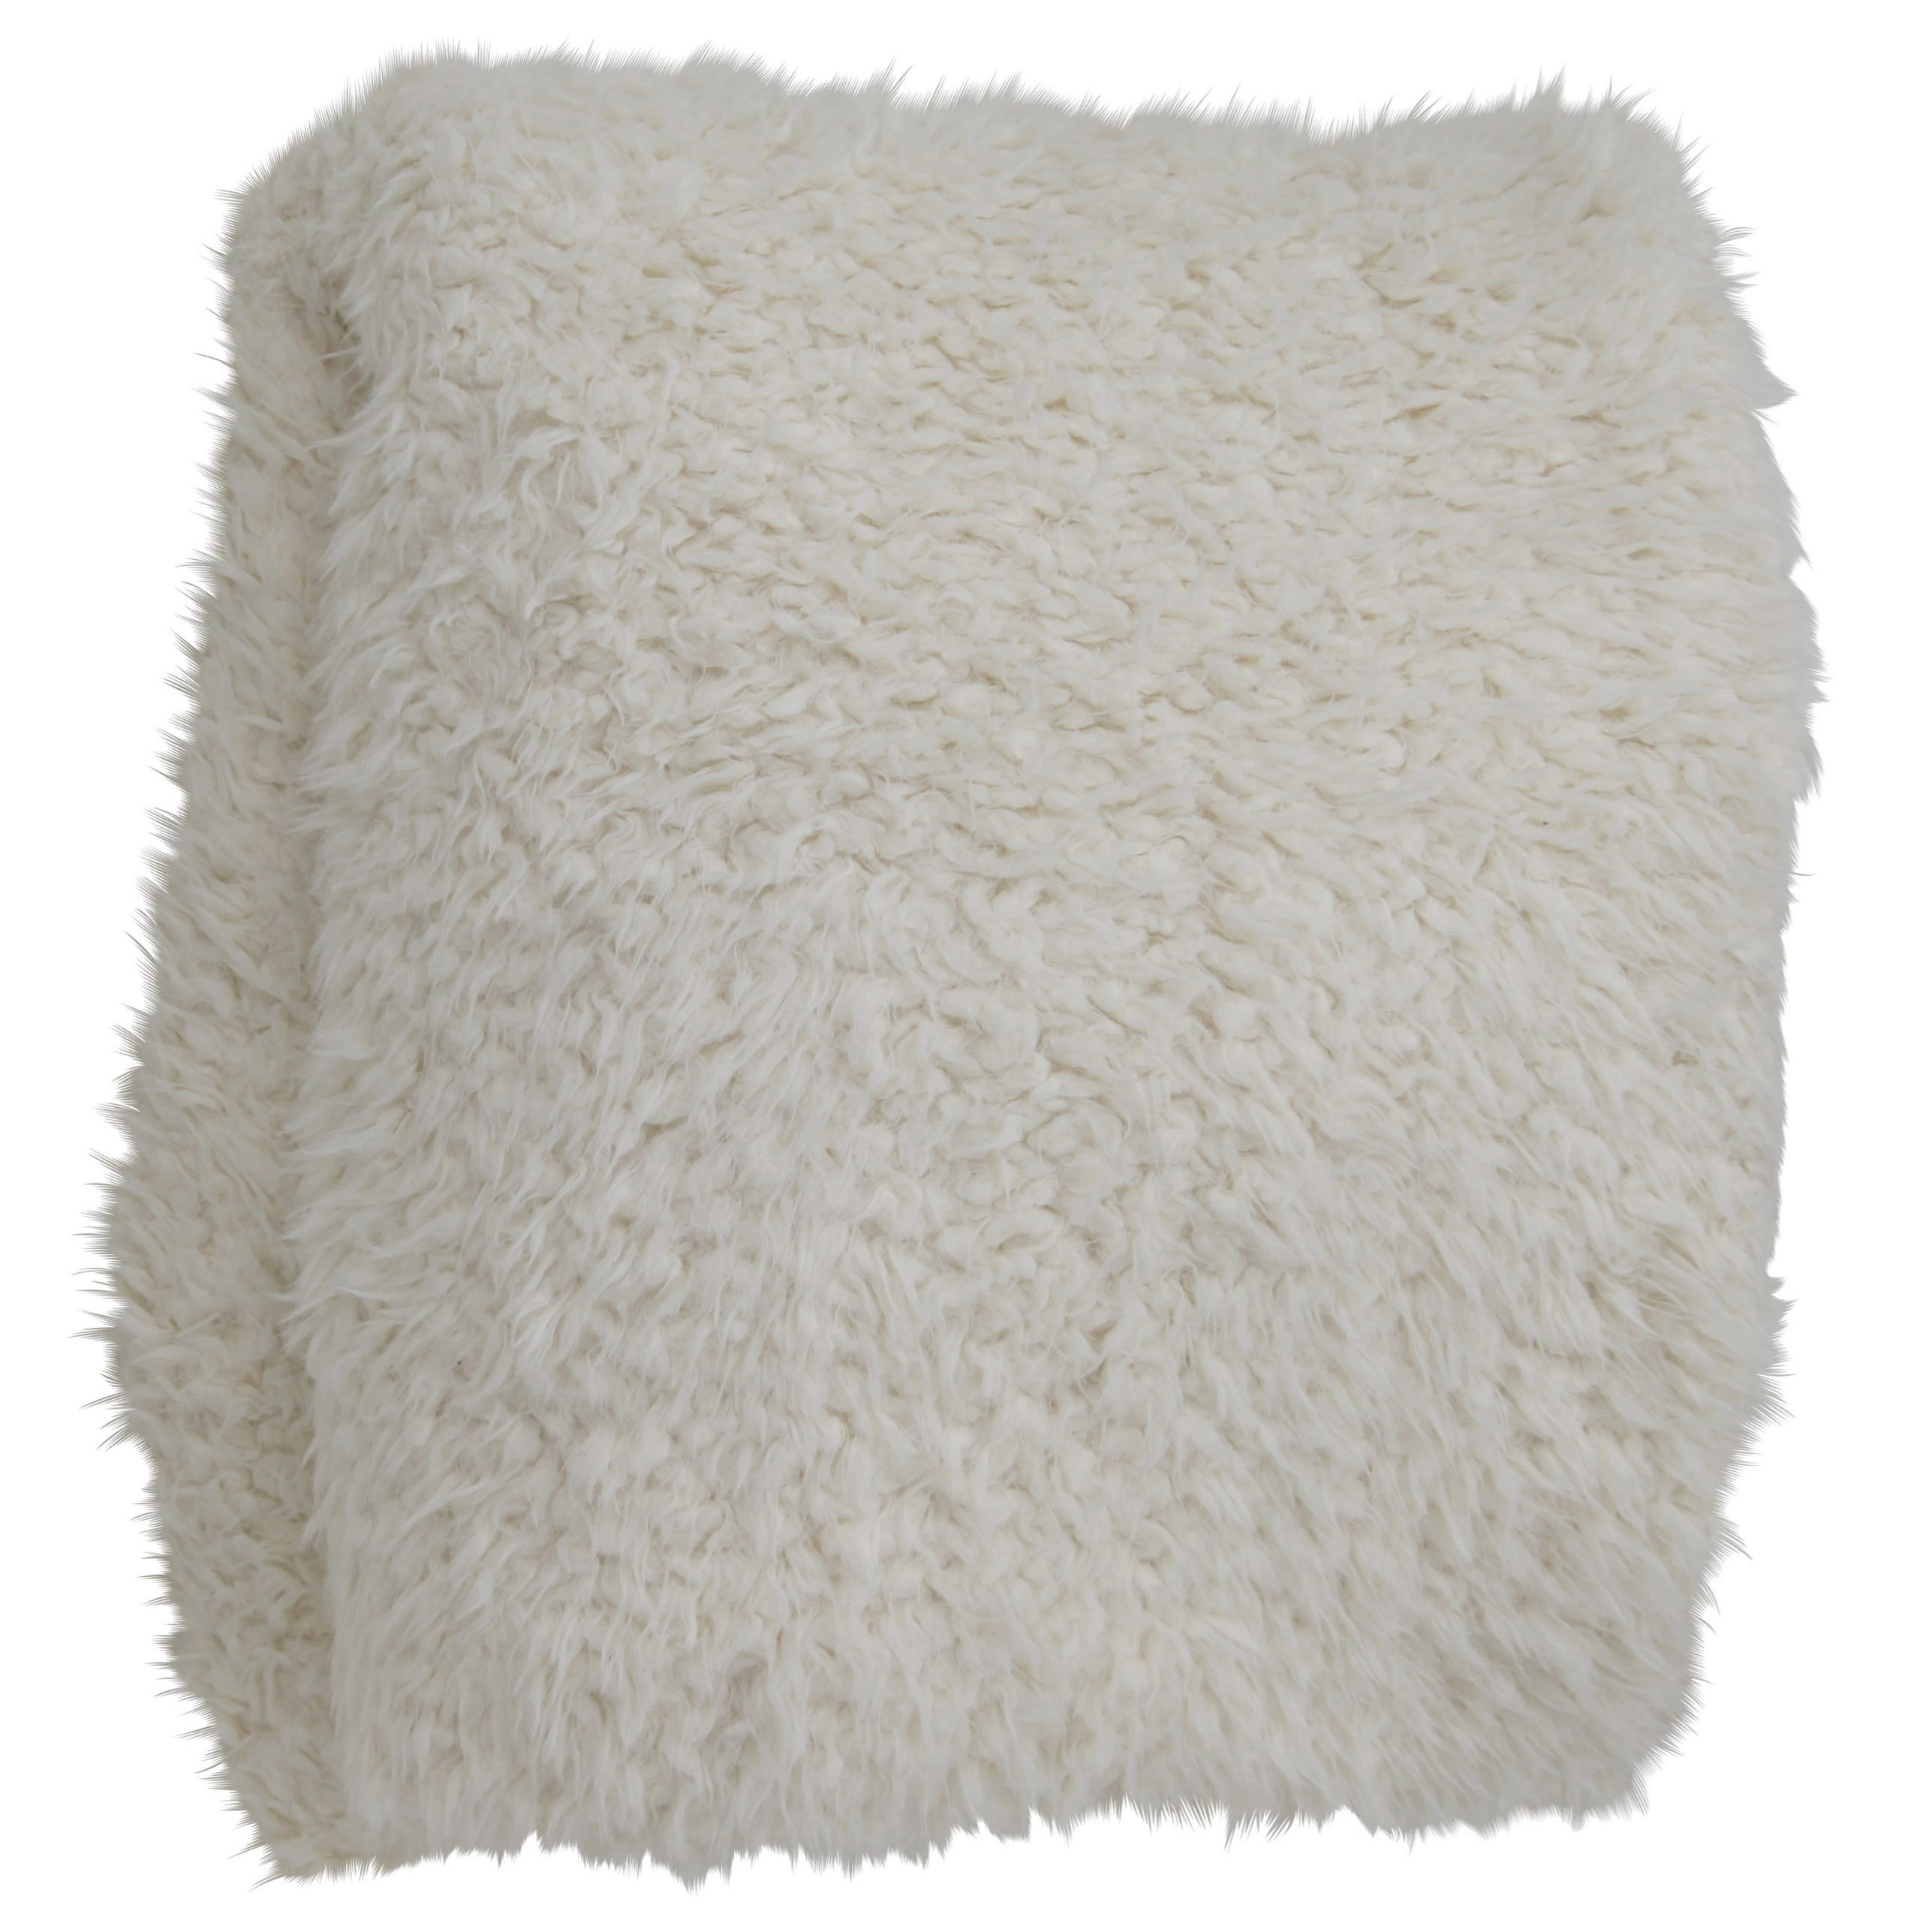 Accessories Oversized Faux Fur Throw Blanket by StyleCraft at Alison Craig Home Furnishings